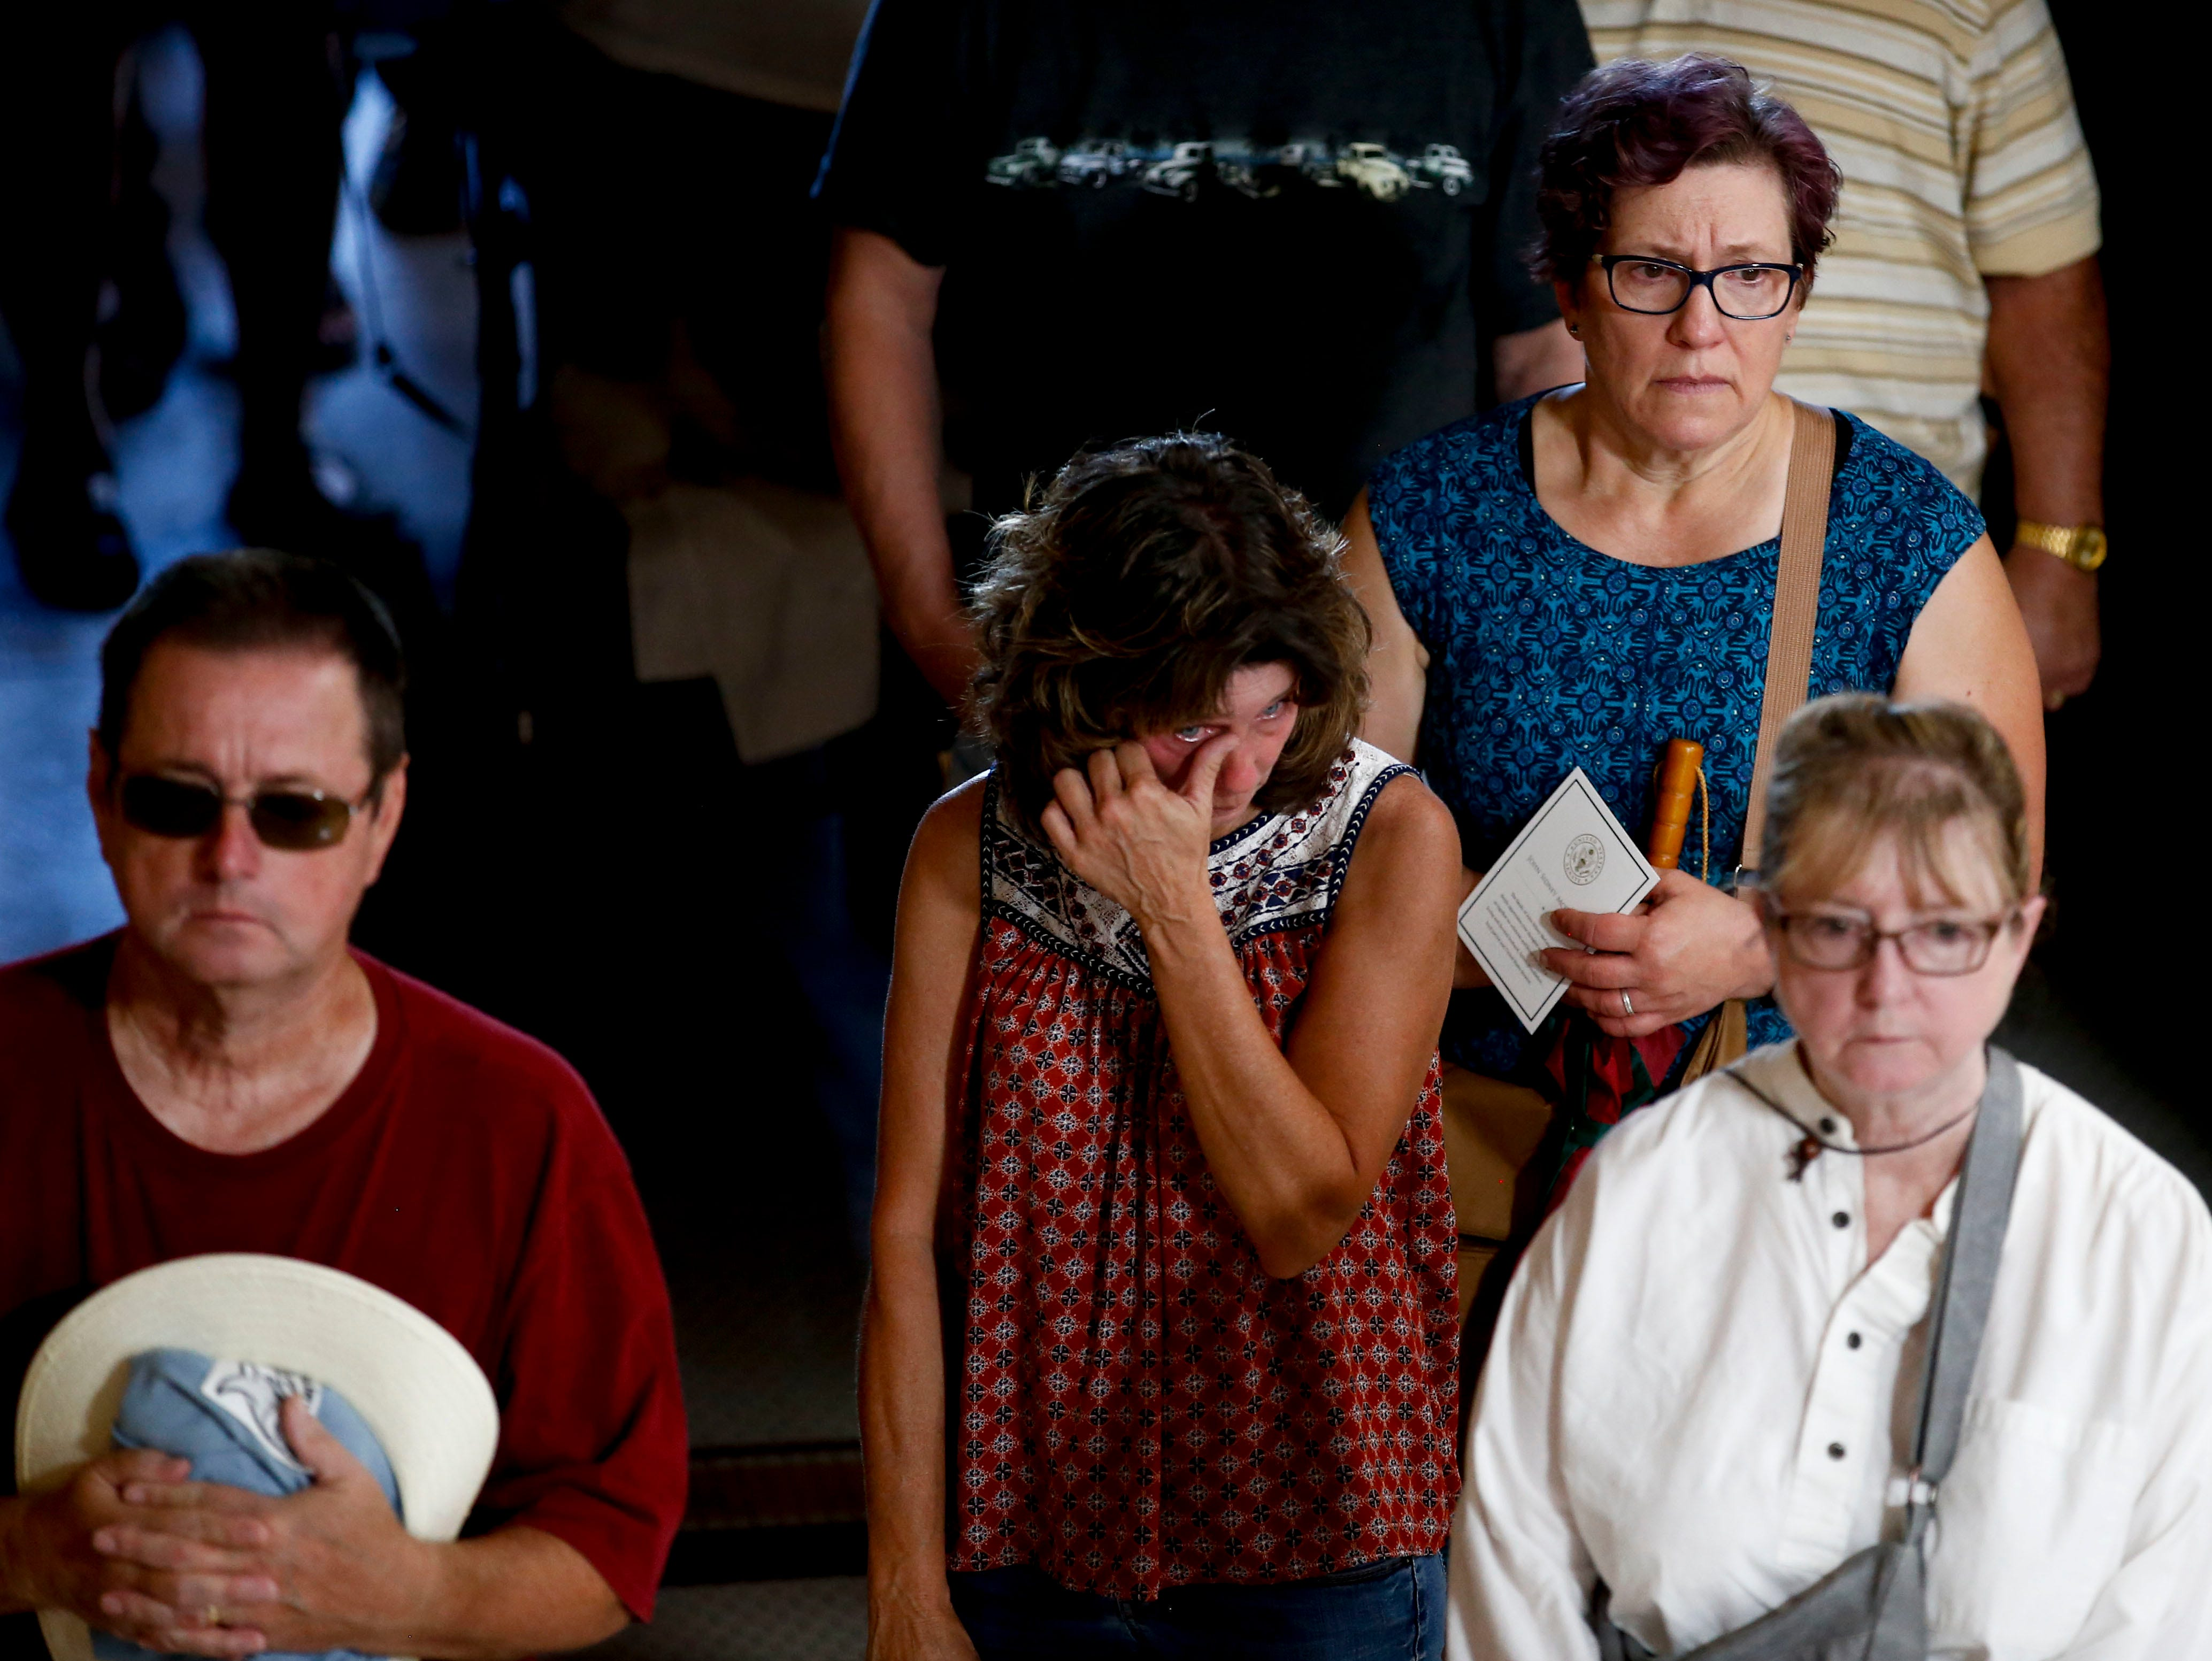 Members of the public line up to pay their respects for Sen. John McCain during a viewing at the Arizona Capitol on Wednesday, Aug. 29, 2018, in Phoenix. (AP Photo/Ross D. Franklin)